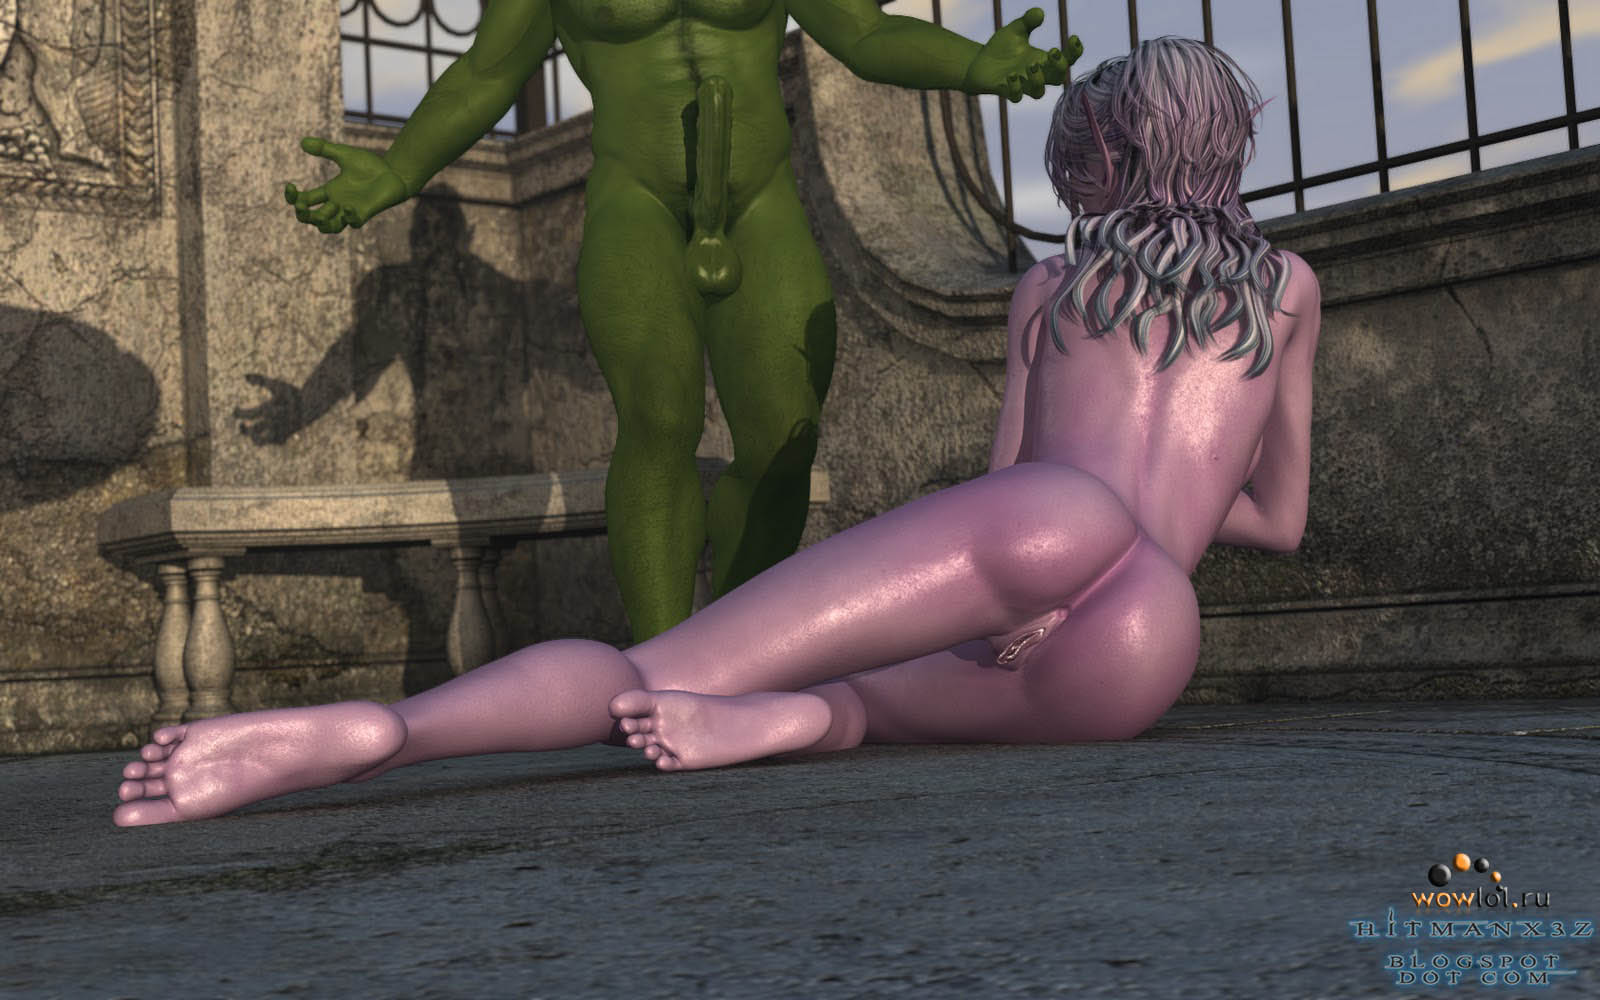 3d World of Warcraft porn latest sexy photos